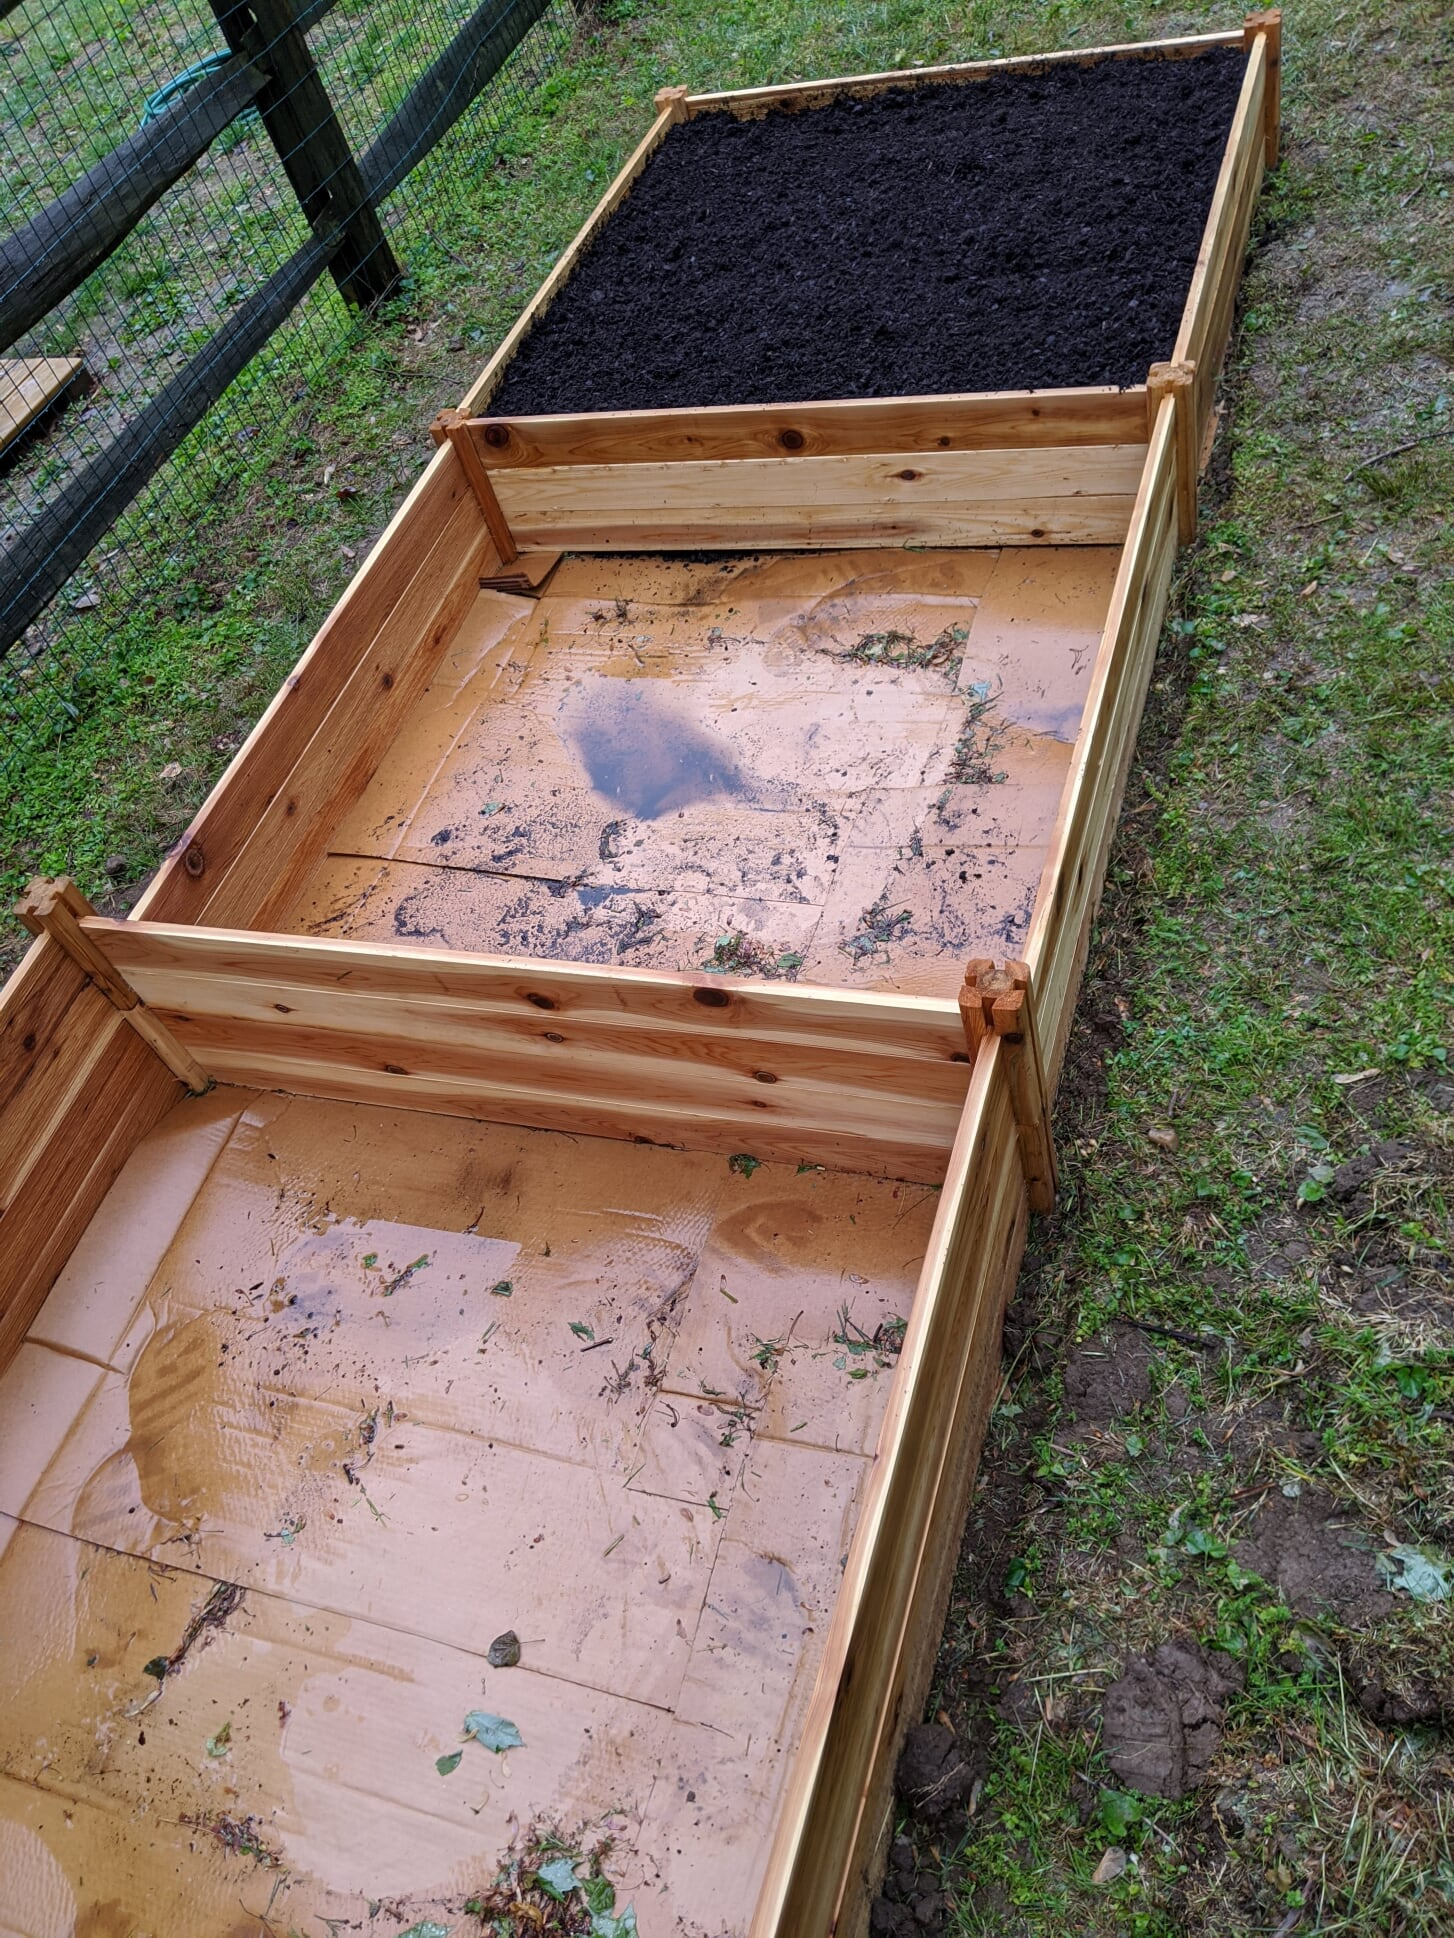 cardboard weed barrier for square foot garden in rain